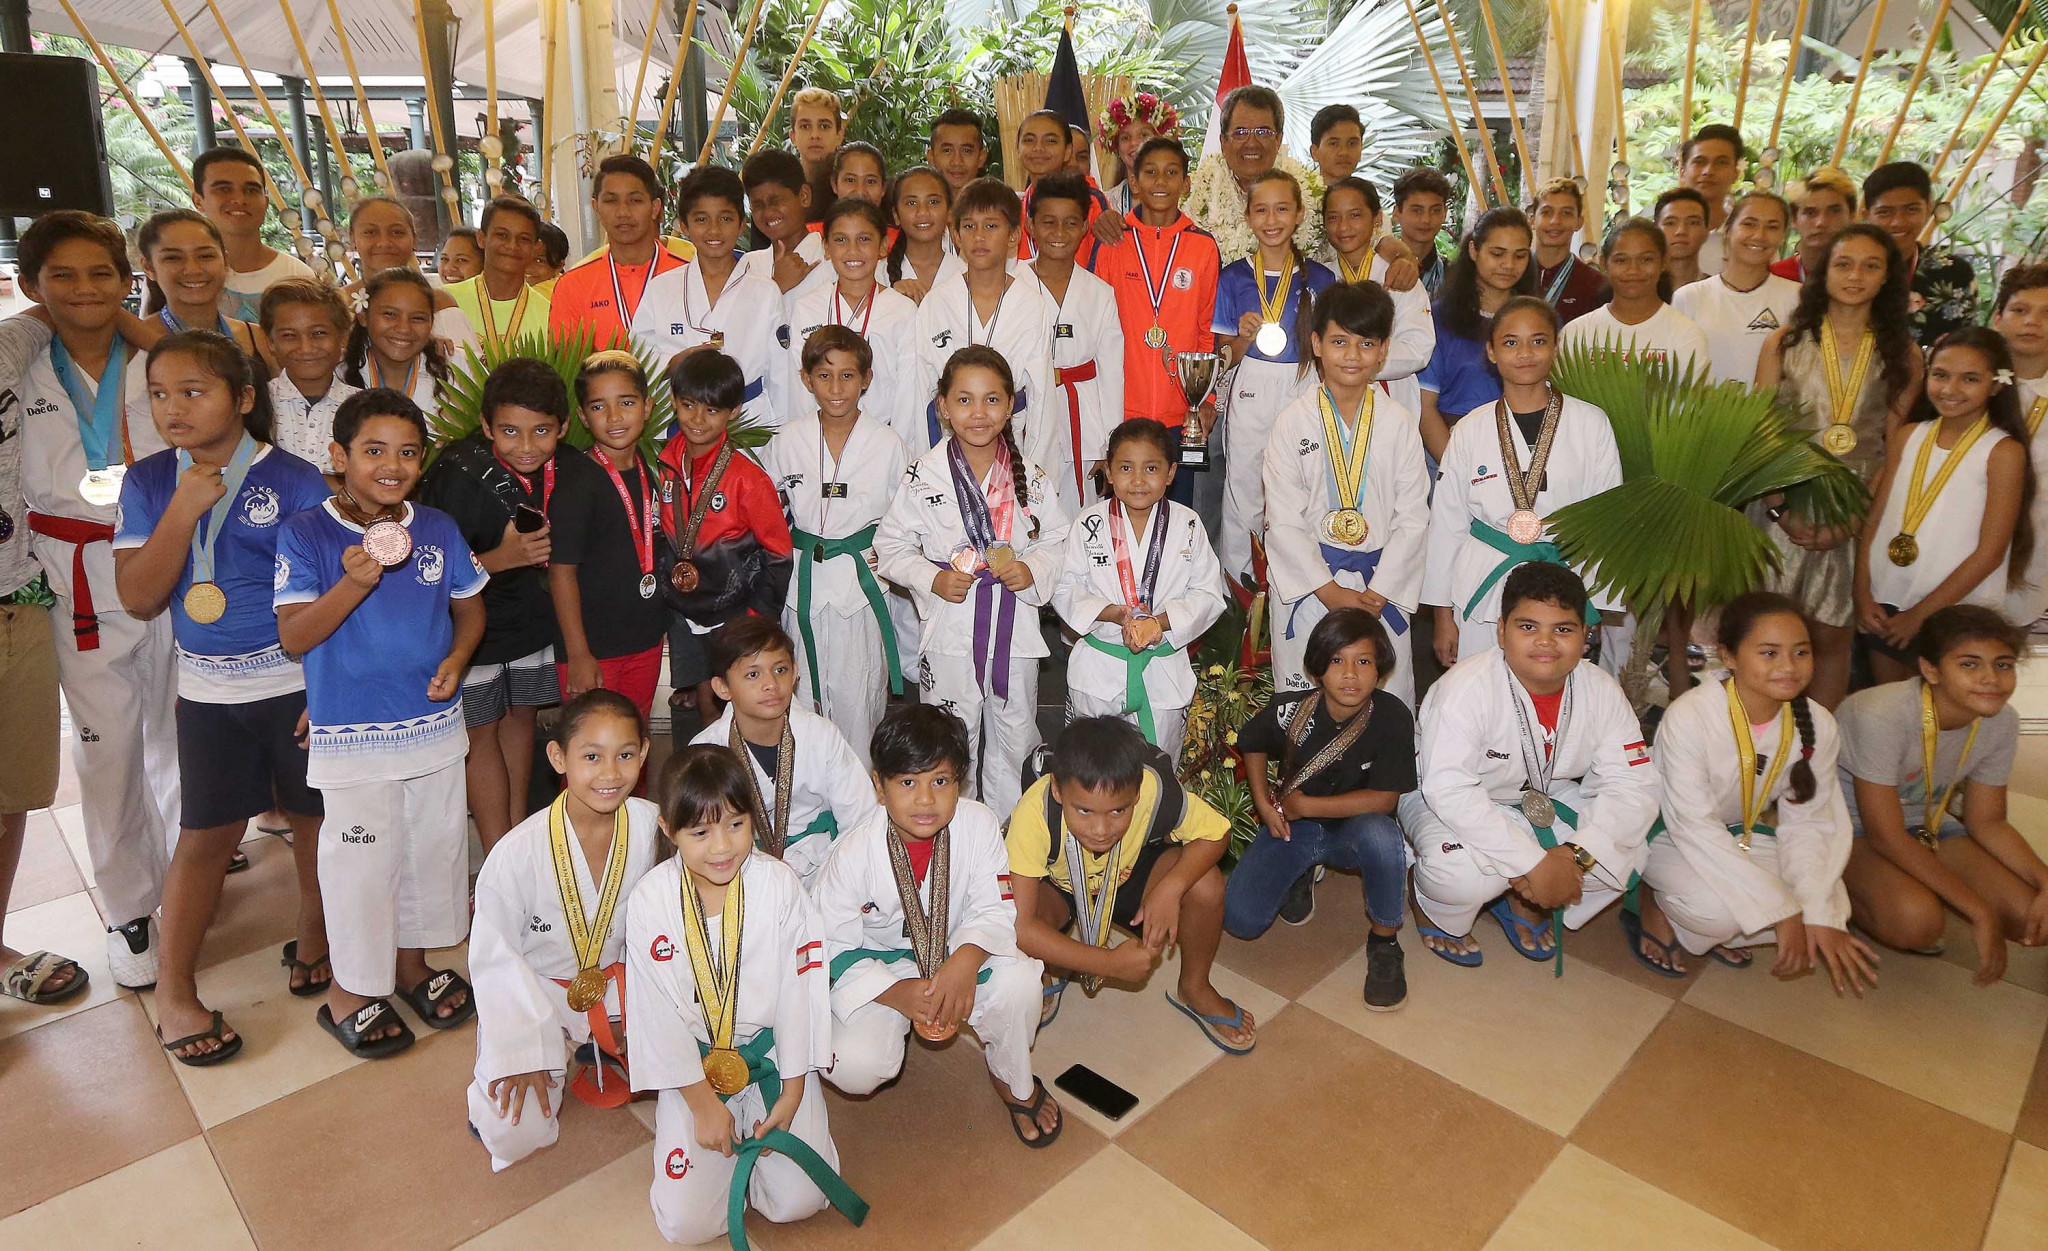 The group had competed at events around the world last year ©French Polynesia Government